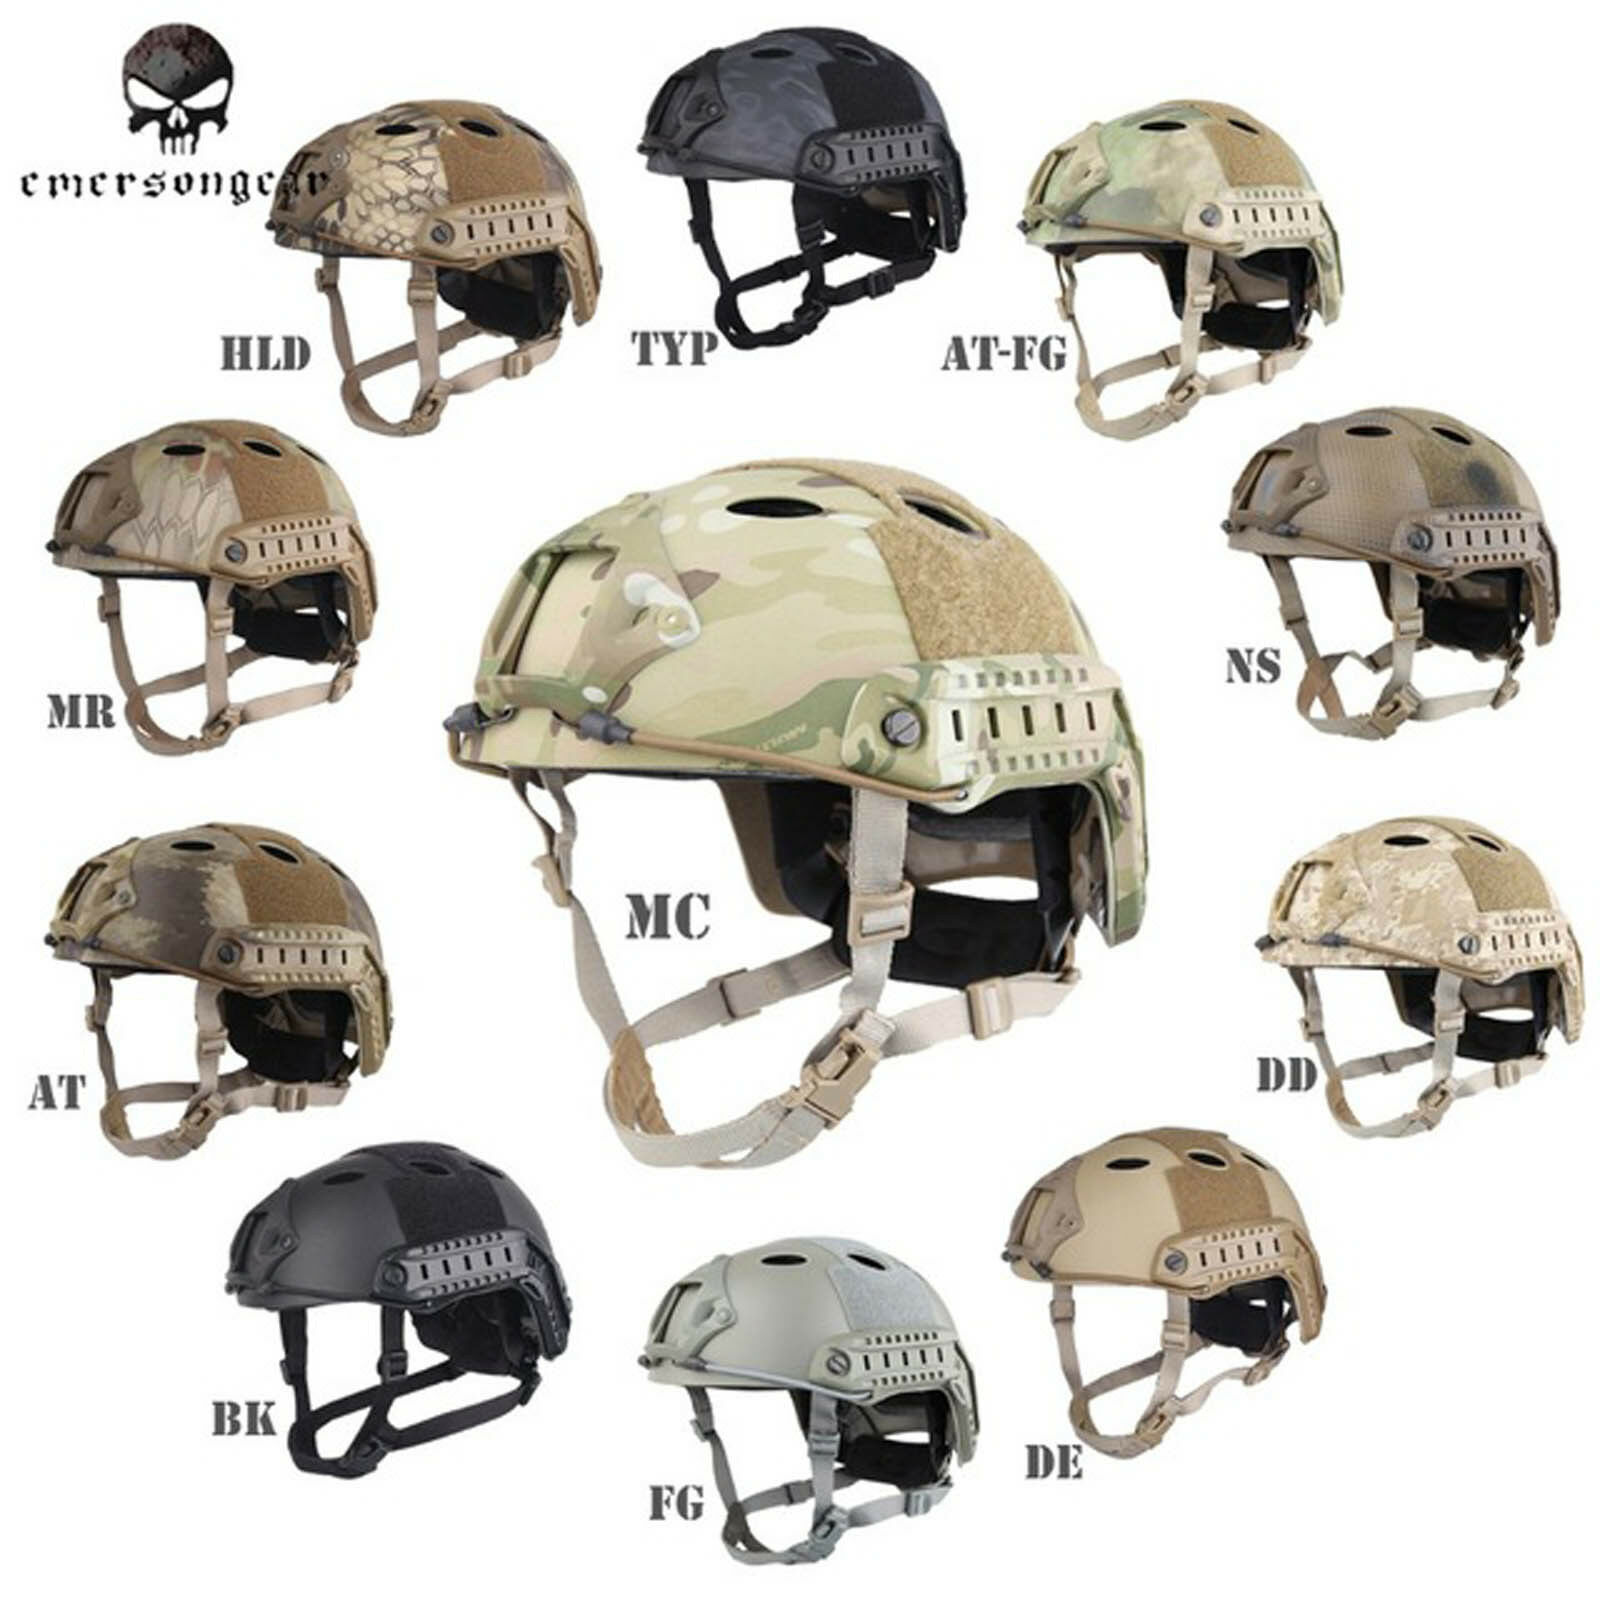 Emerson POM  FAST Helmet PJ Type Tactical Military Airsoft Helmet EM5668  the lowest price